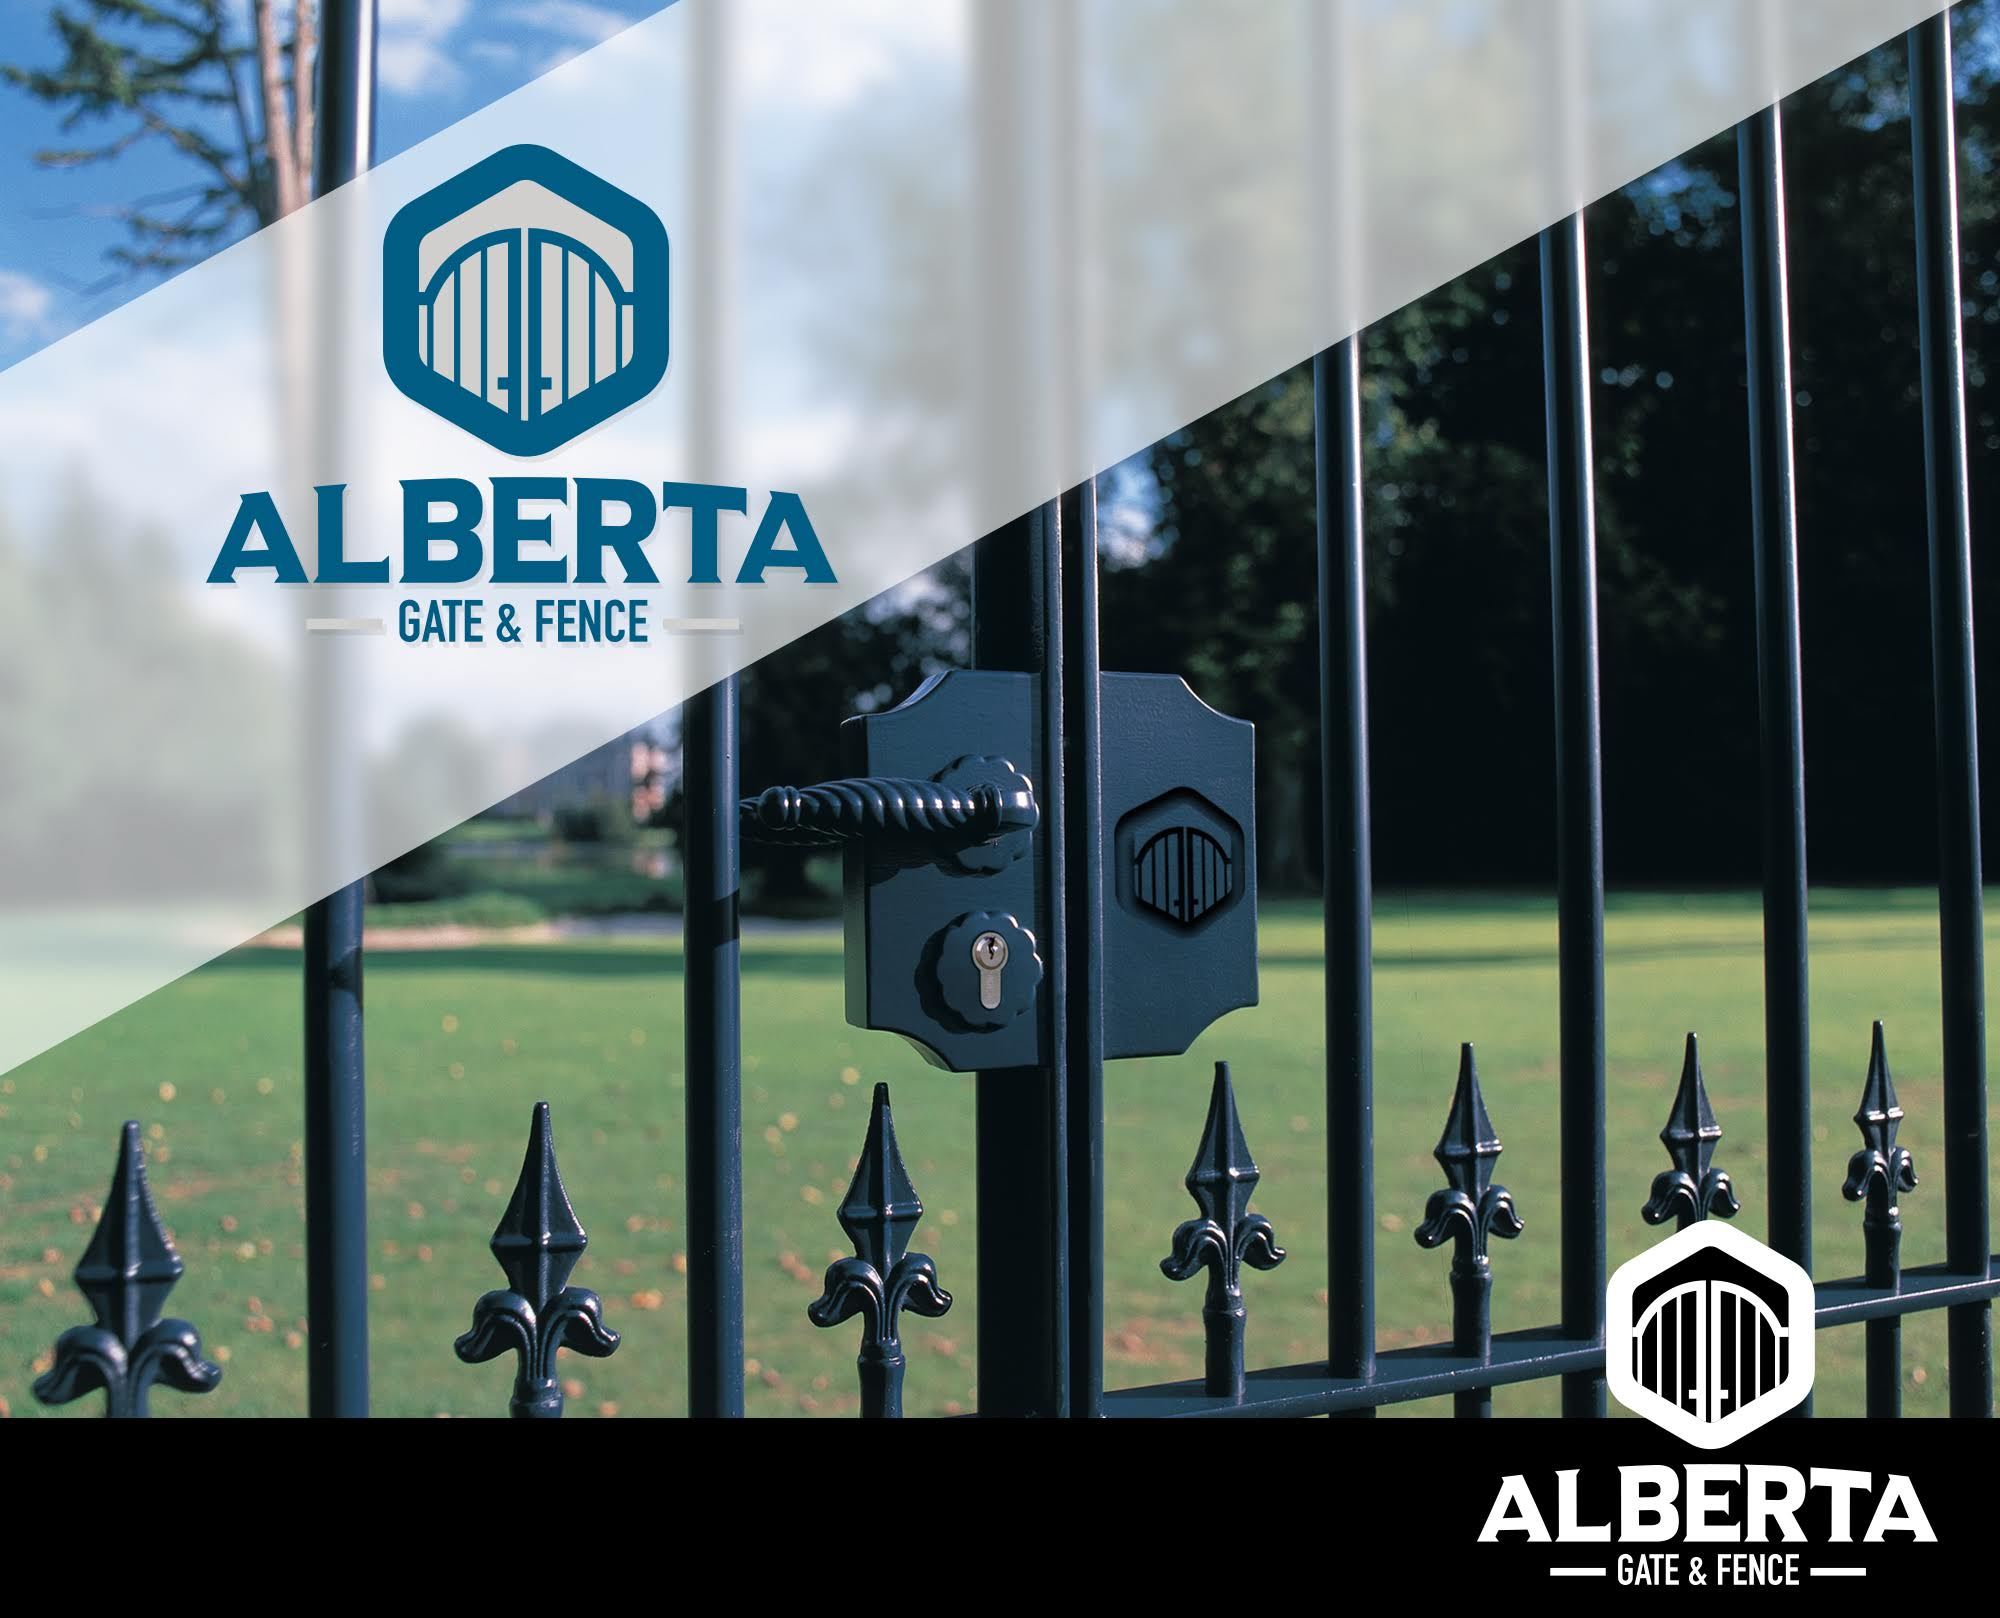 Alberta gate and fence